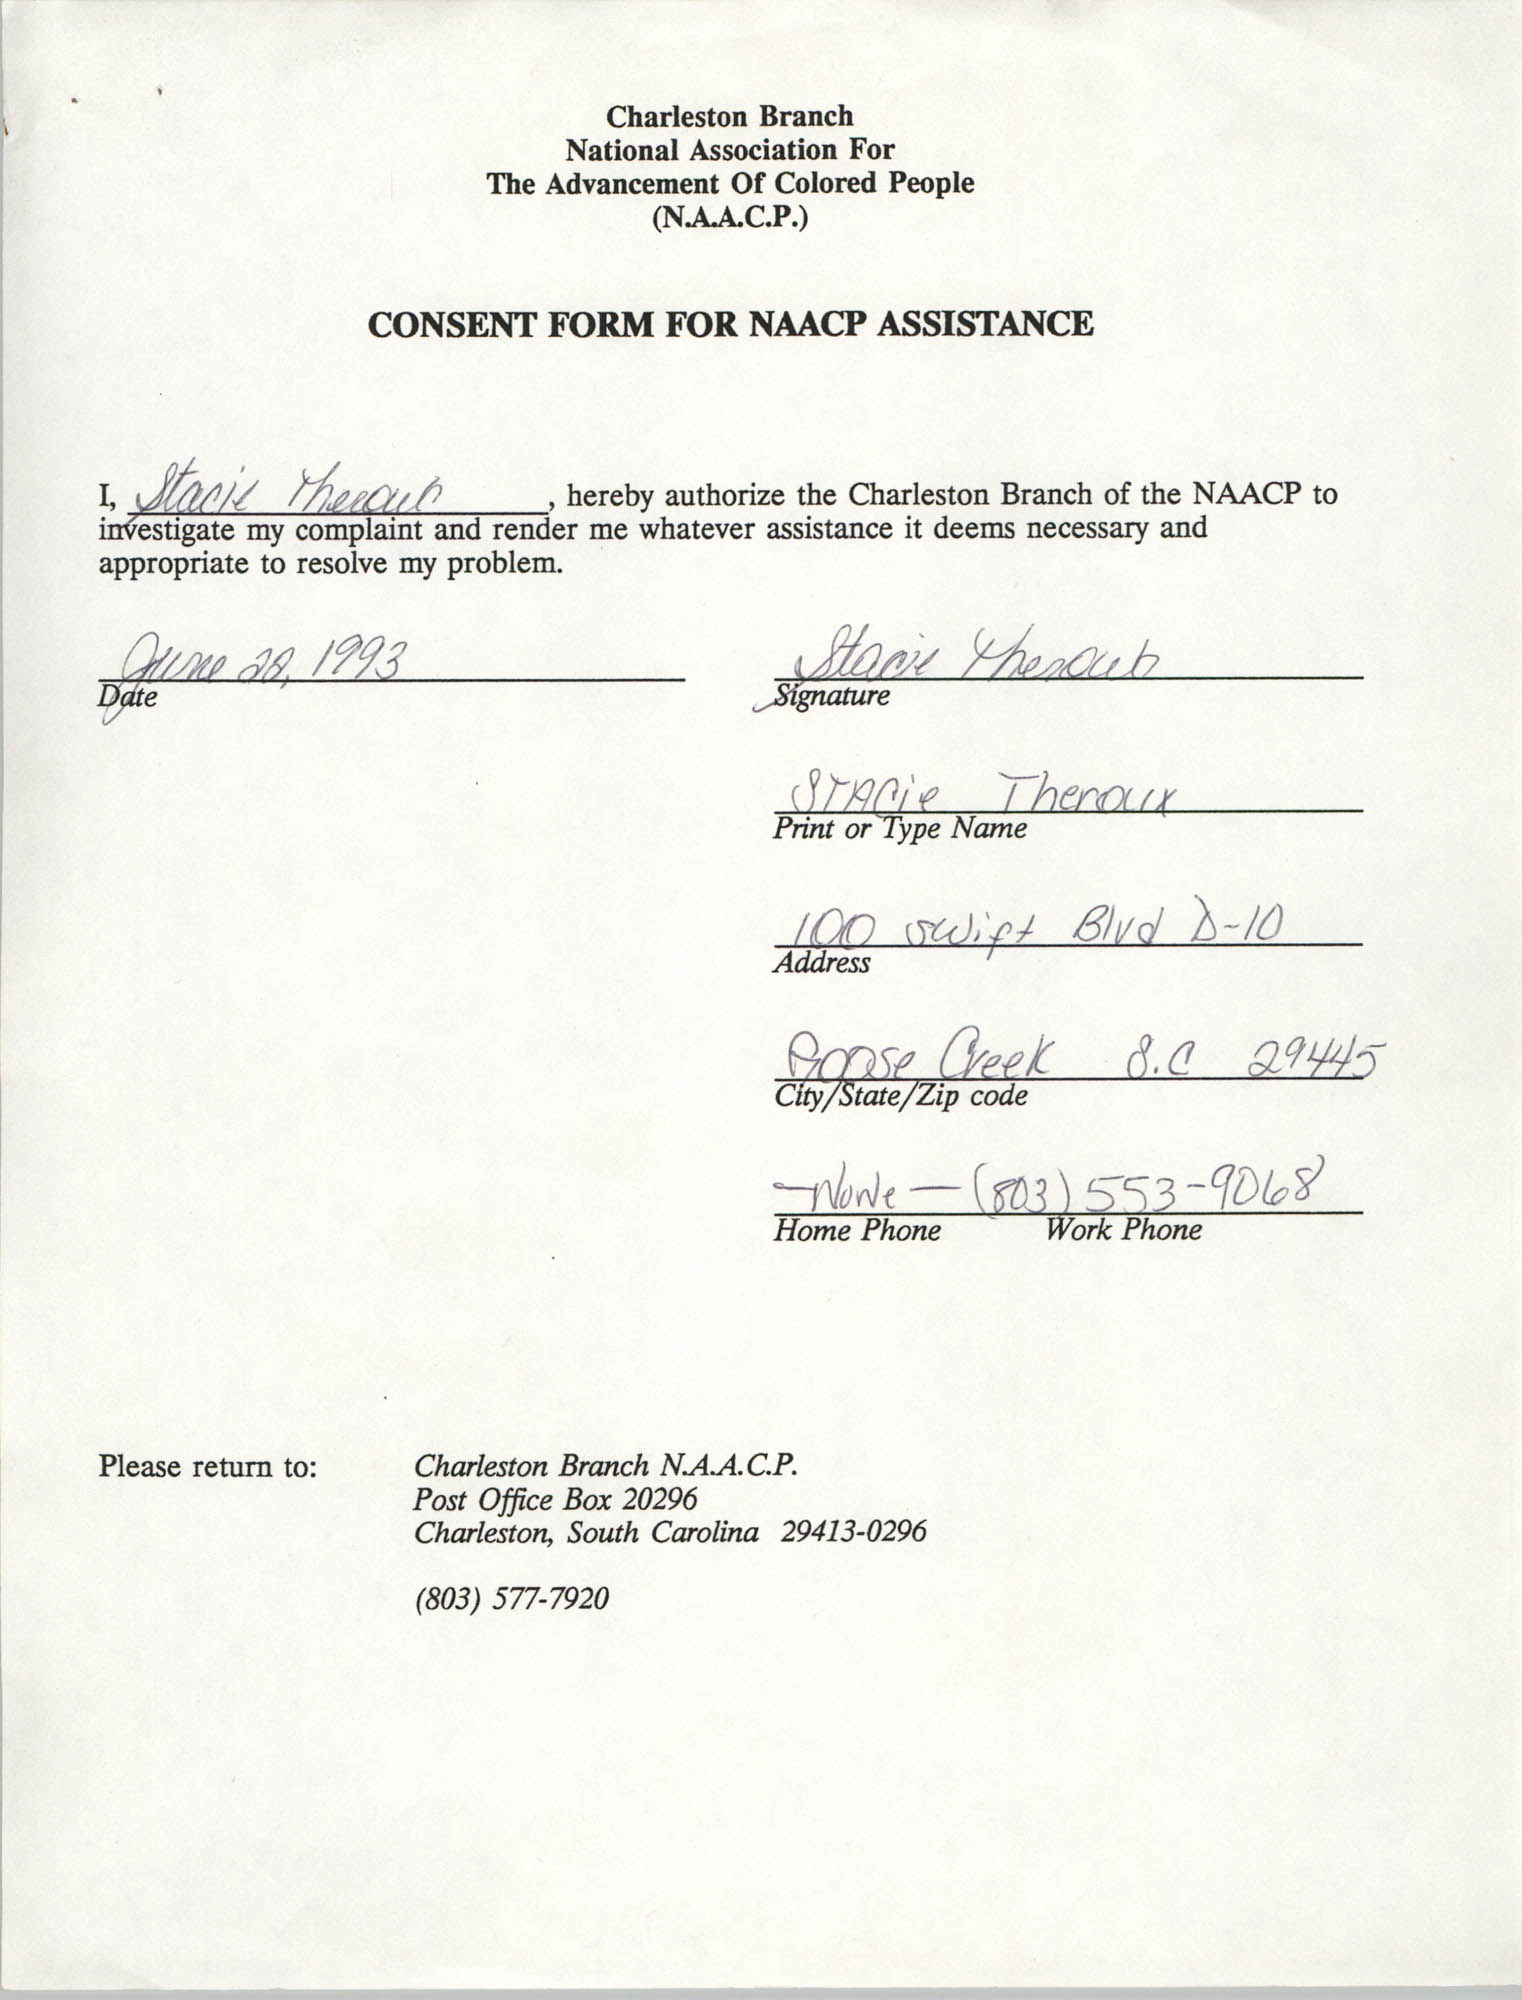 Consent Form for NAACP Assistance Signed by Stacie Theroux, June 28, 1993